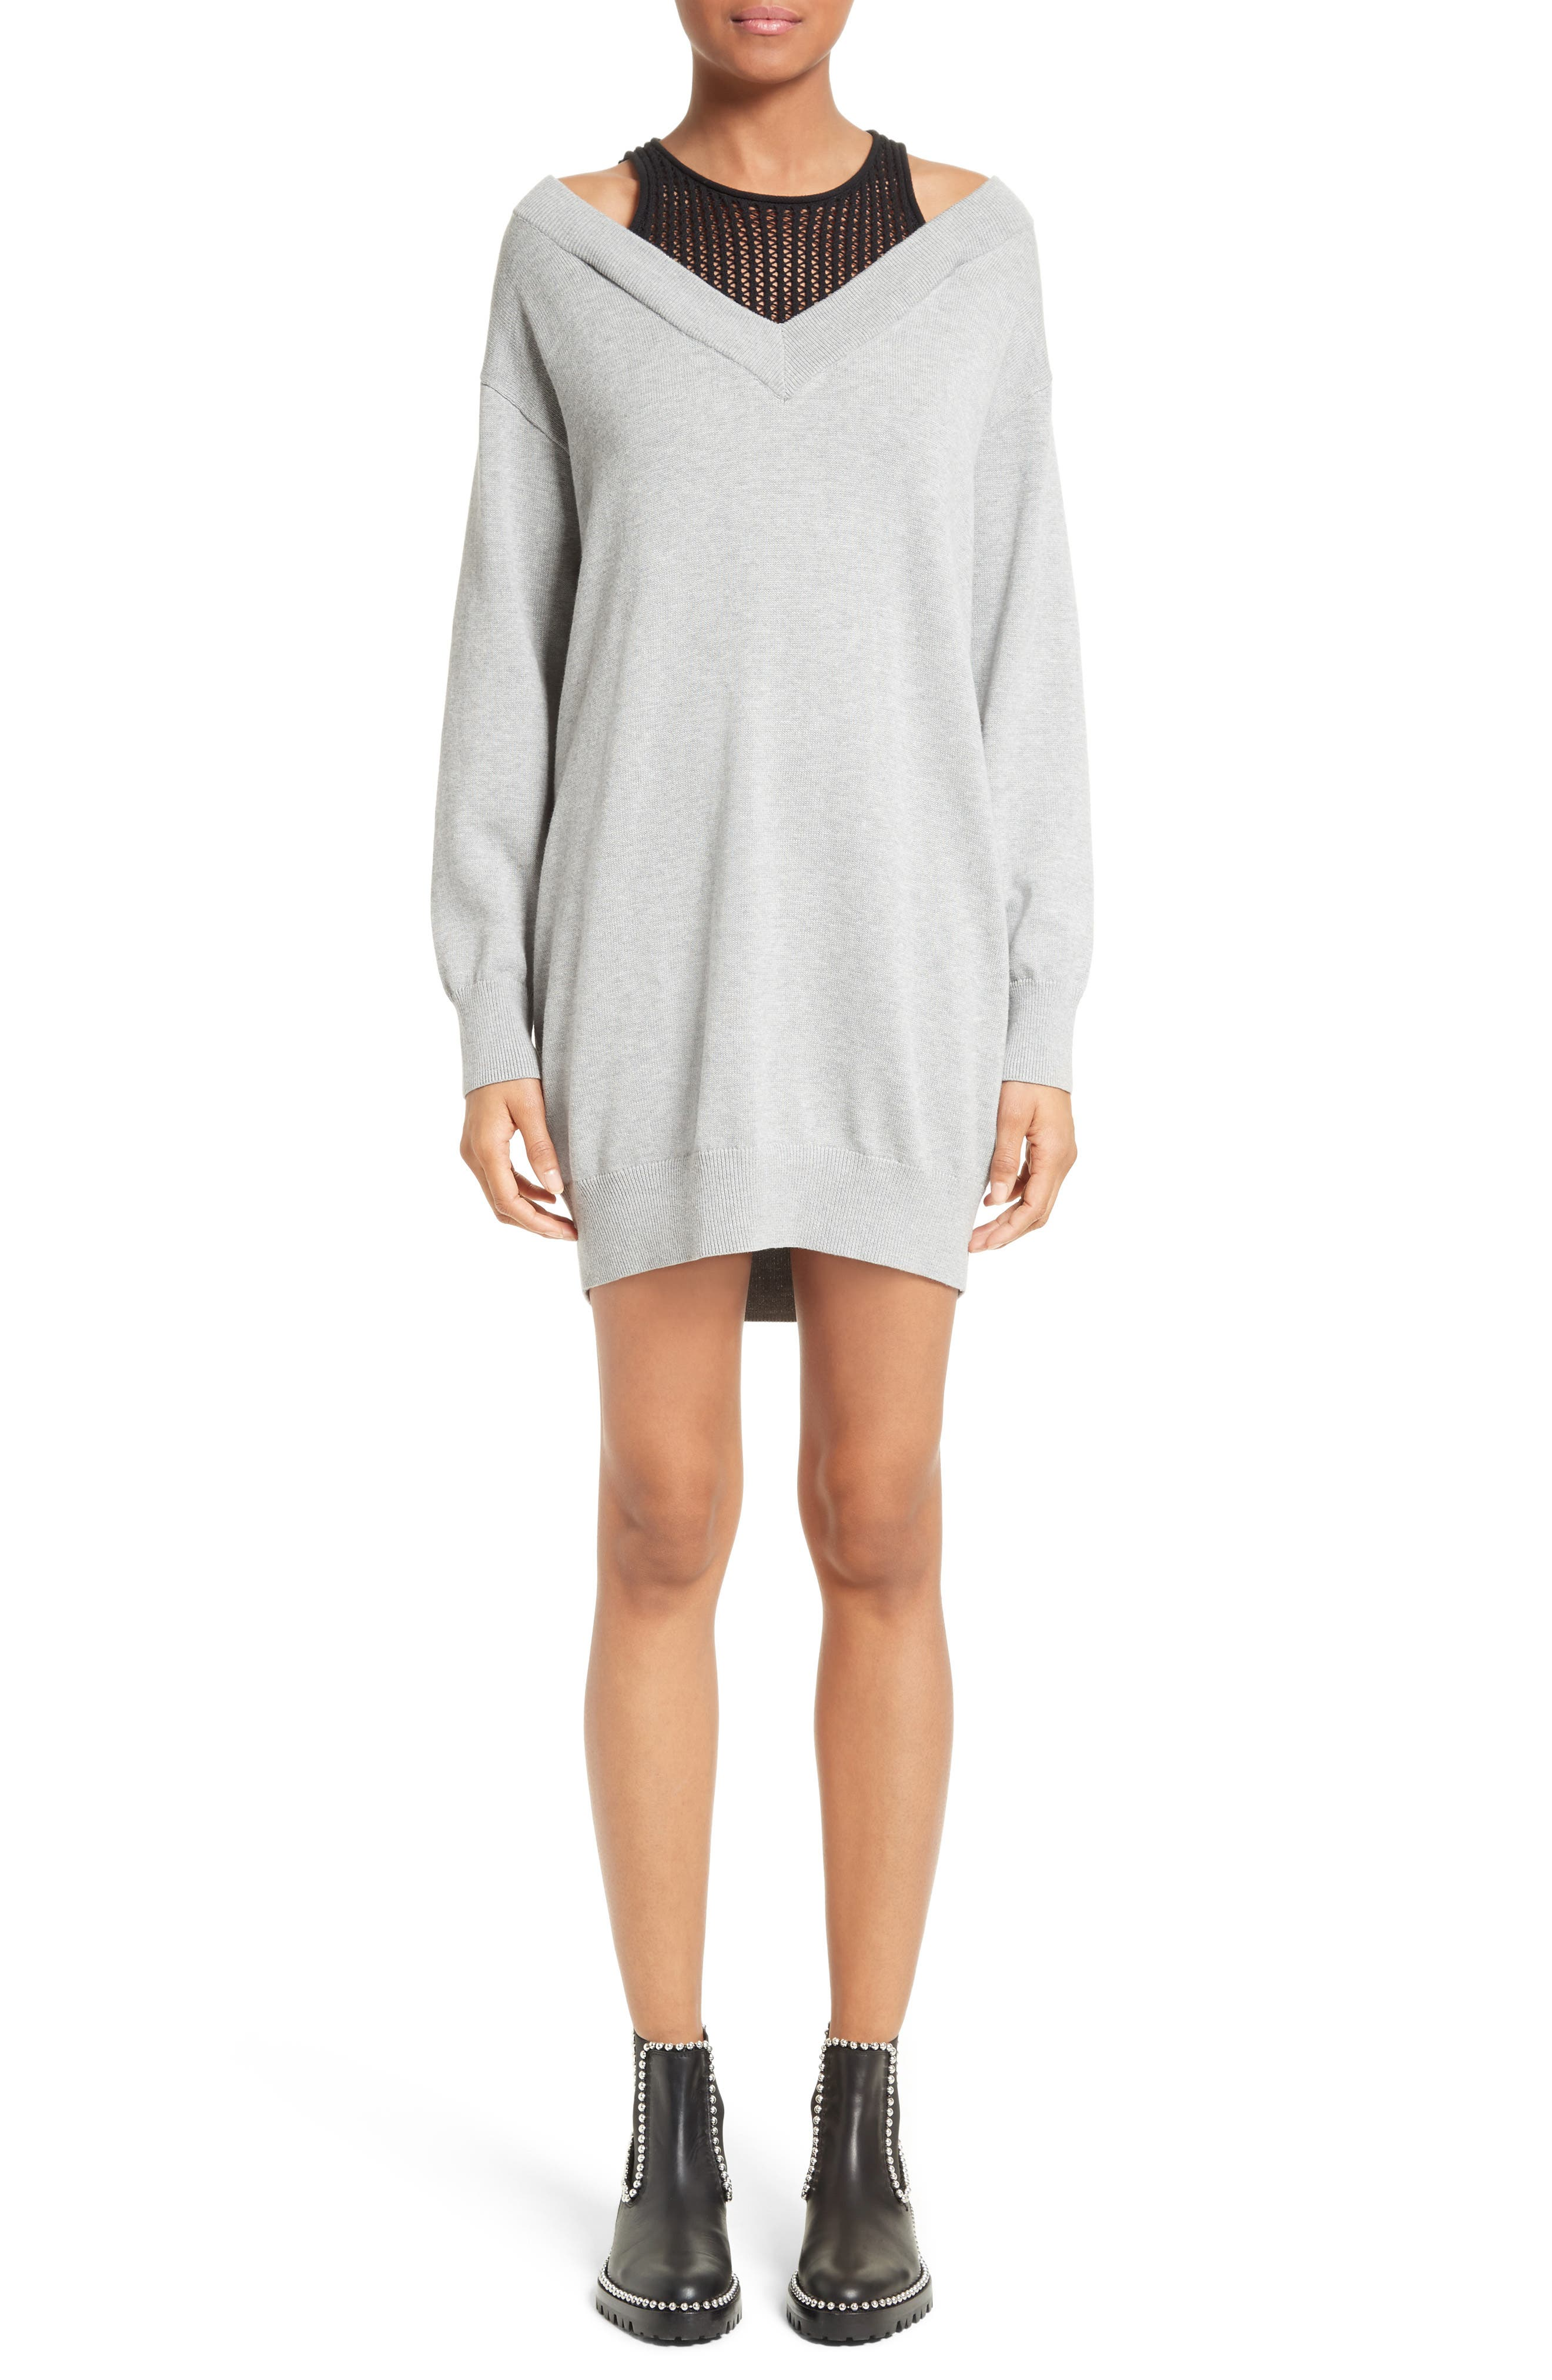 T by Alexander Wang Knit Sweater Dress with Inner Tank